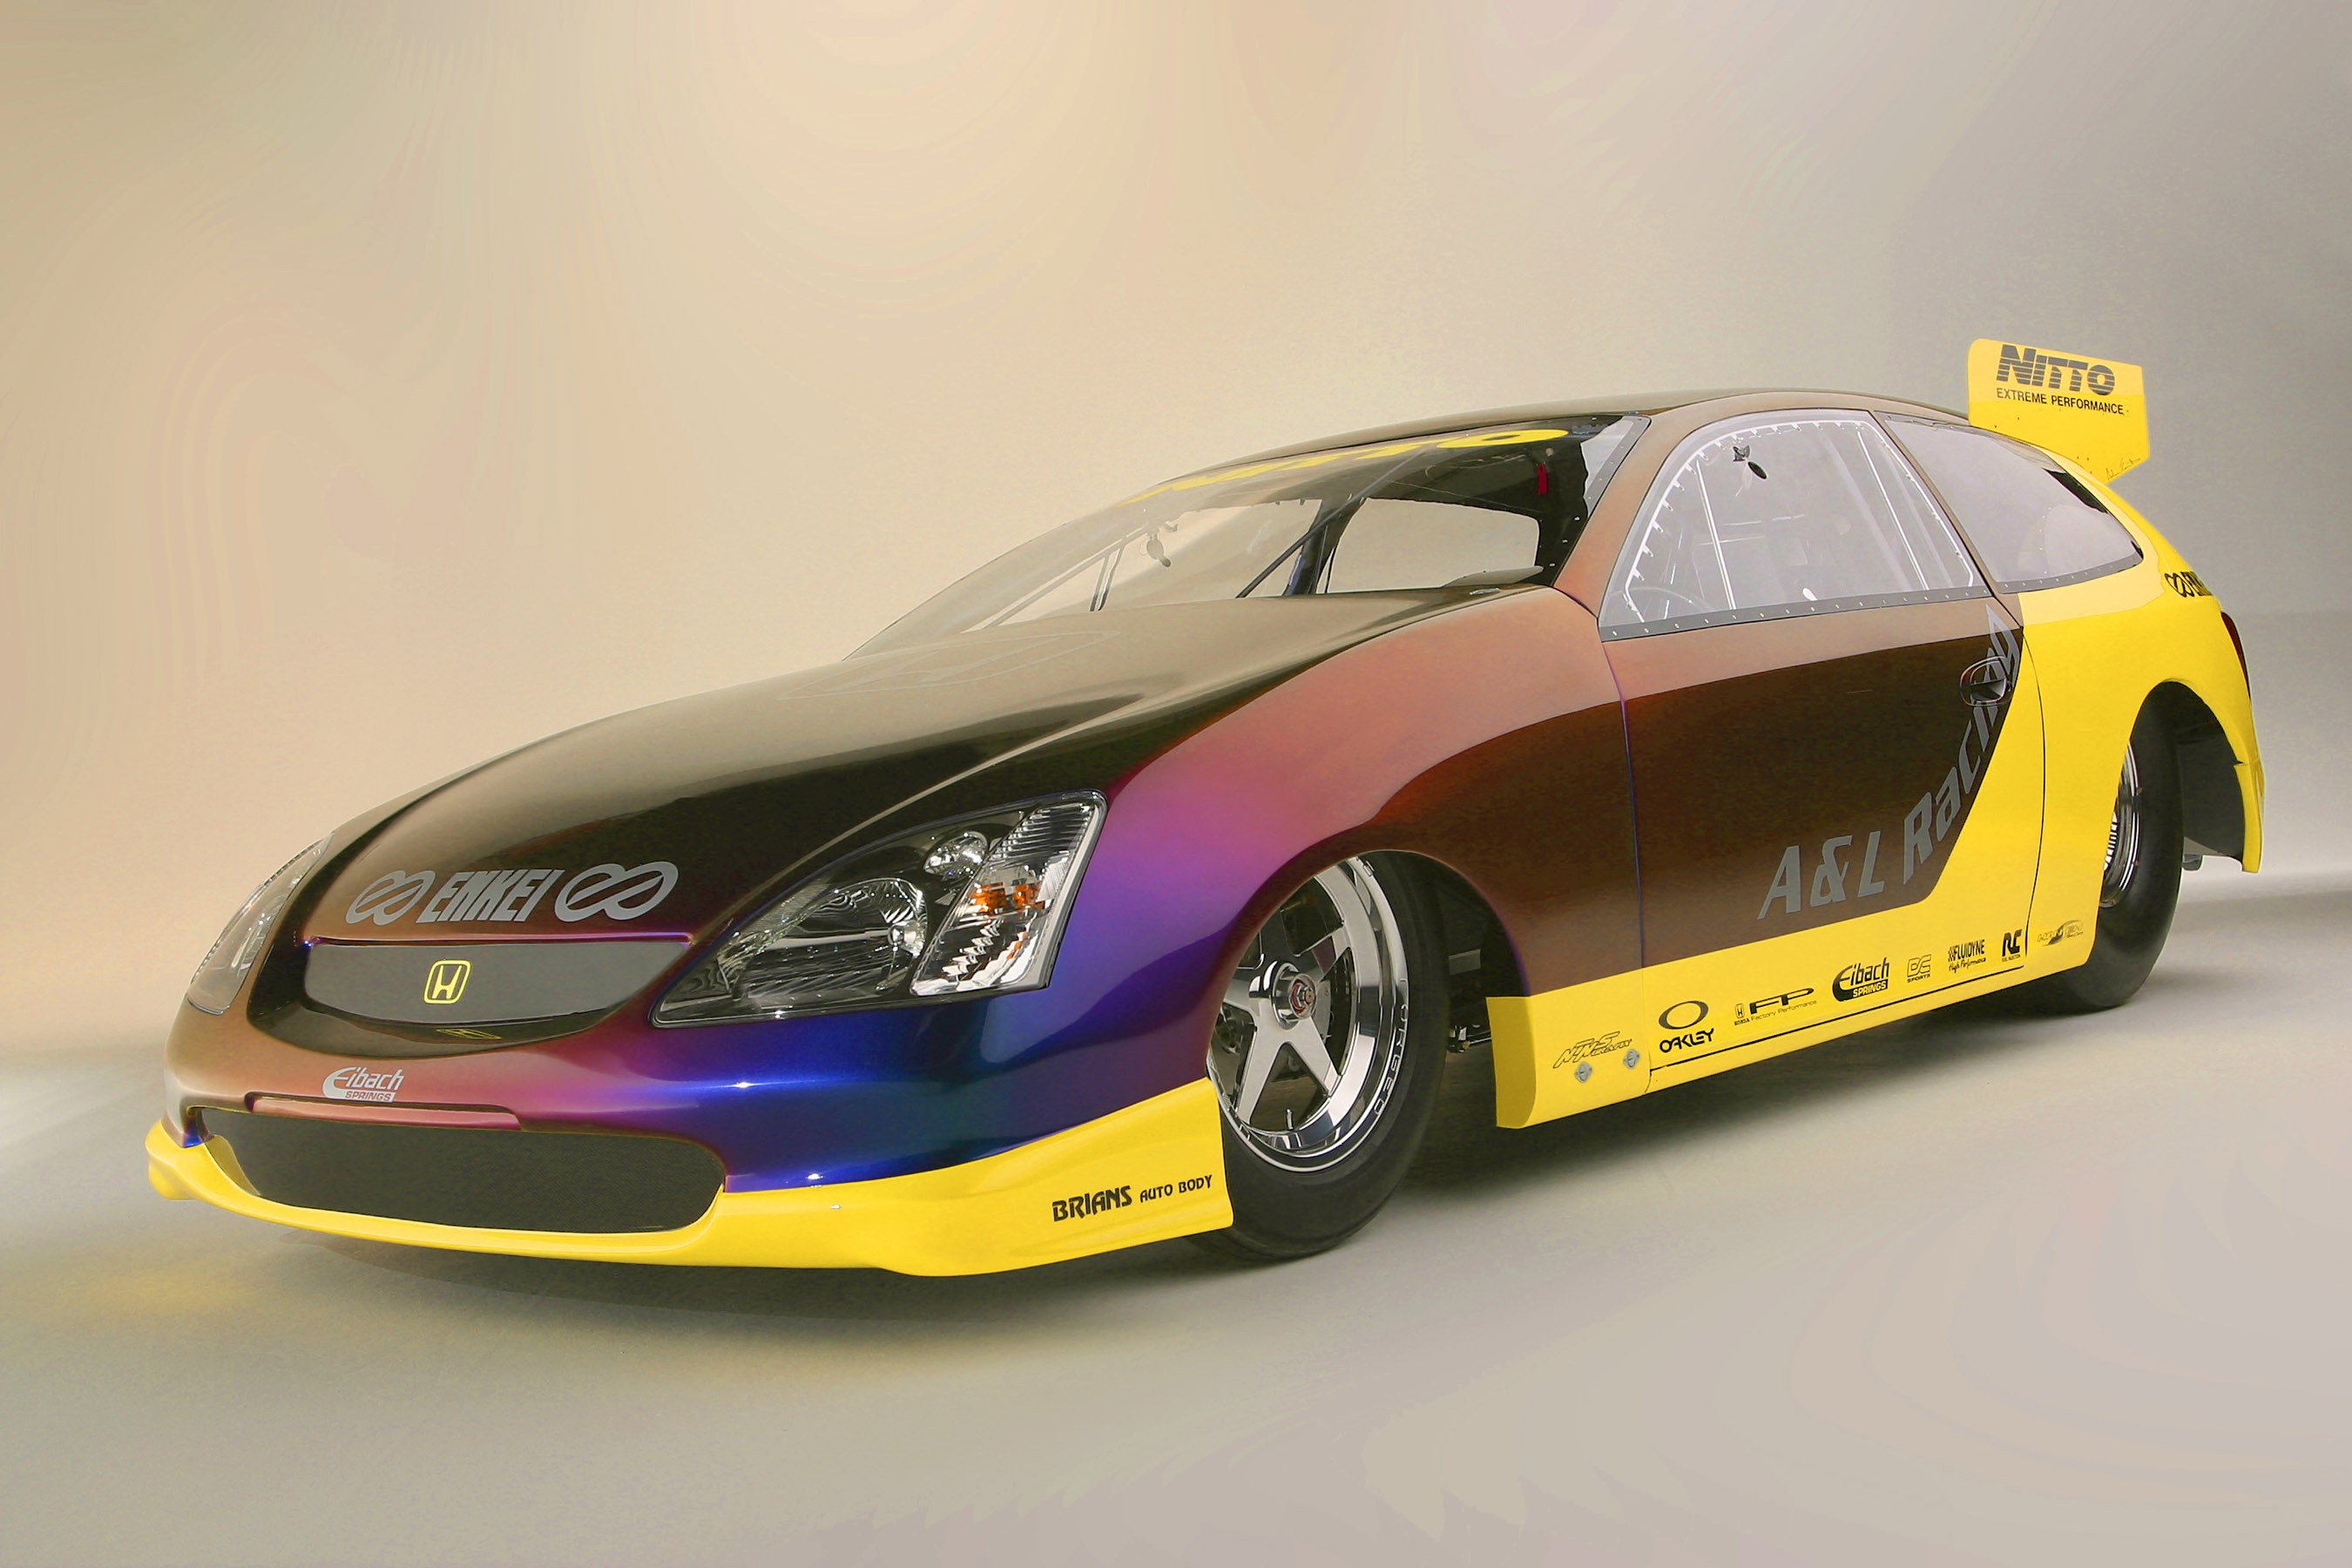 Honda Pro Drag Civic Si Concept photo #1